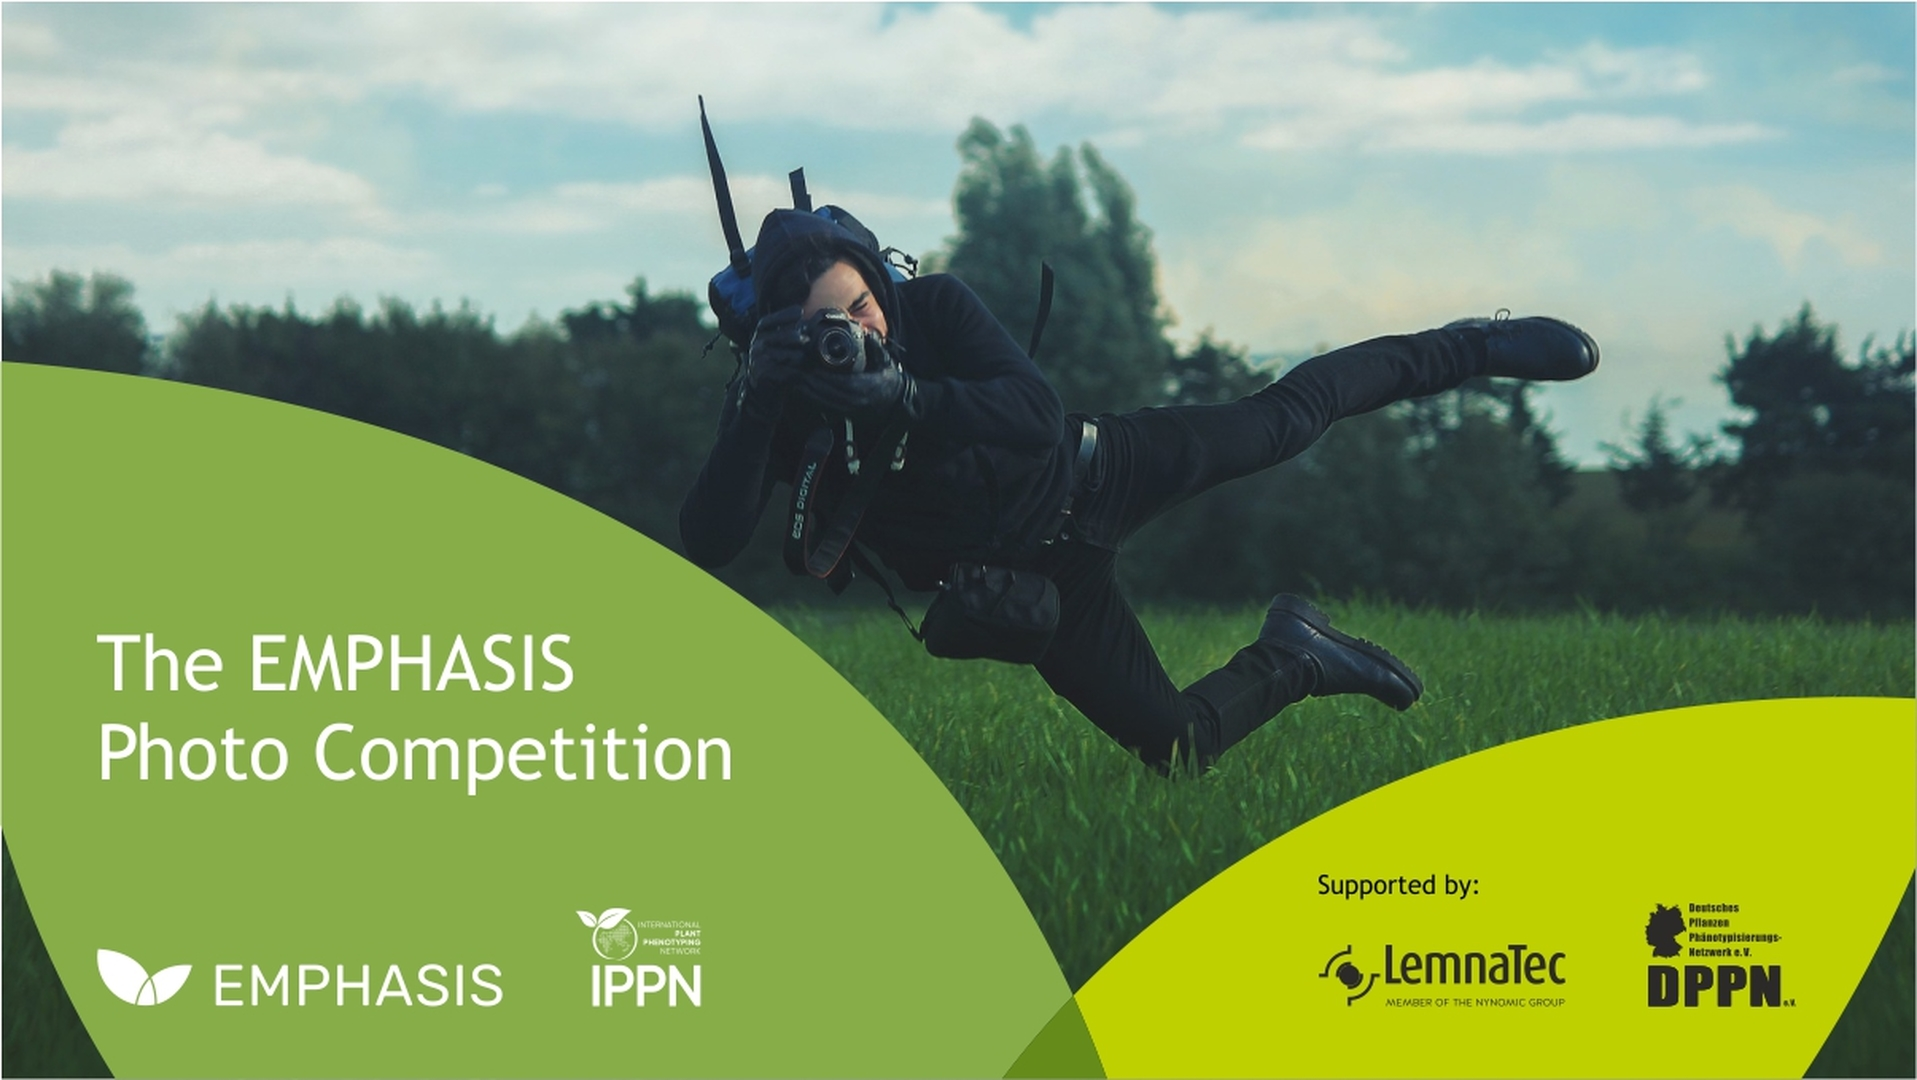 EMPHASIS Photo Competition